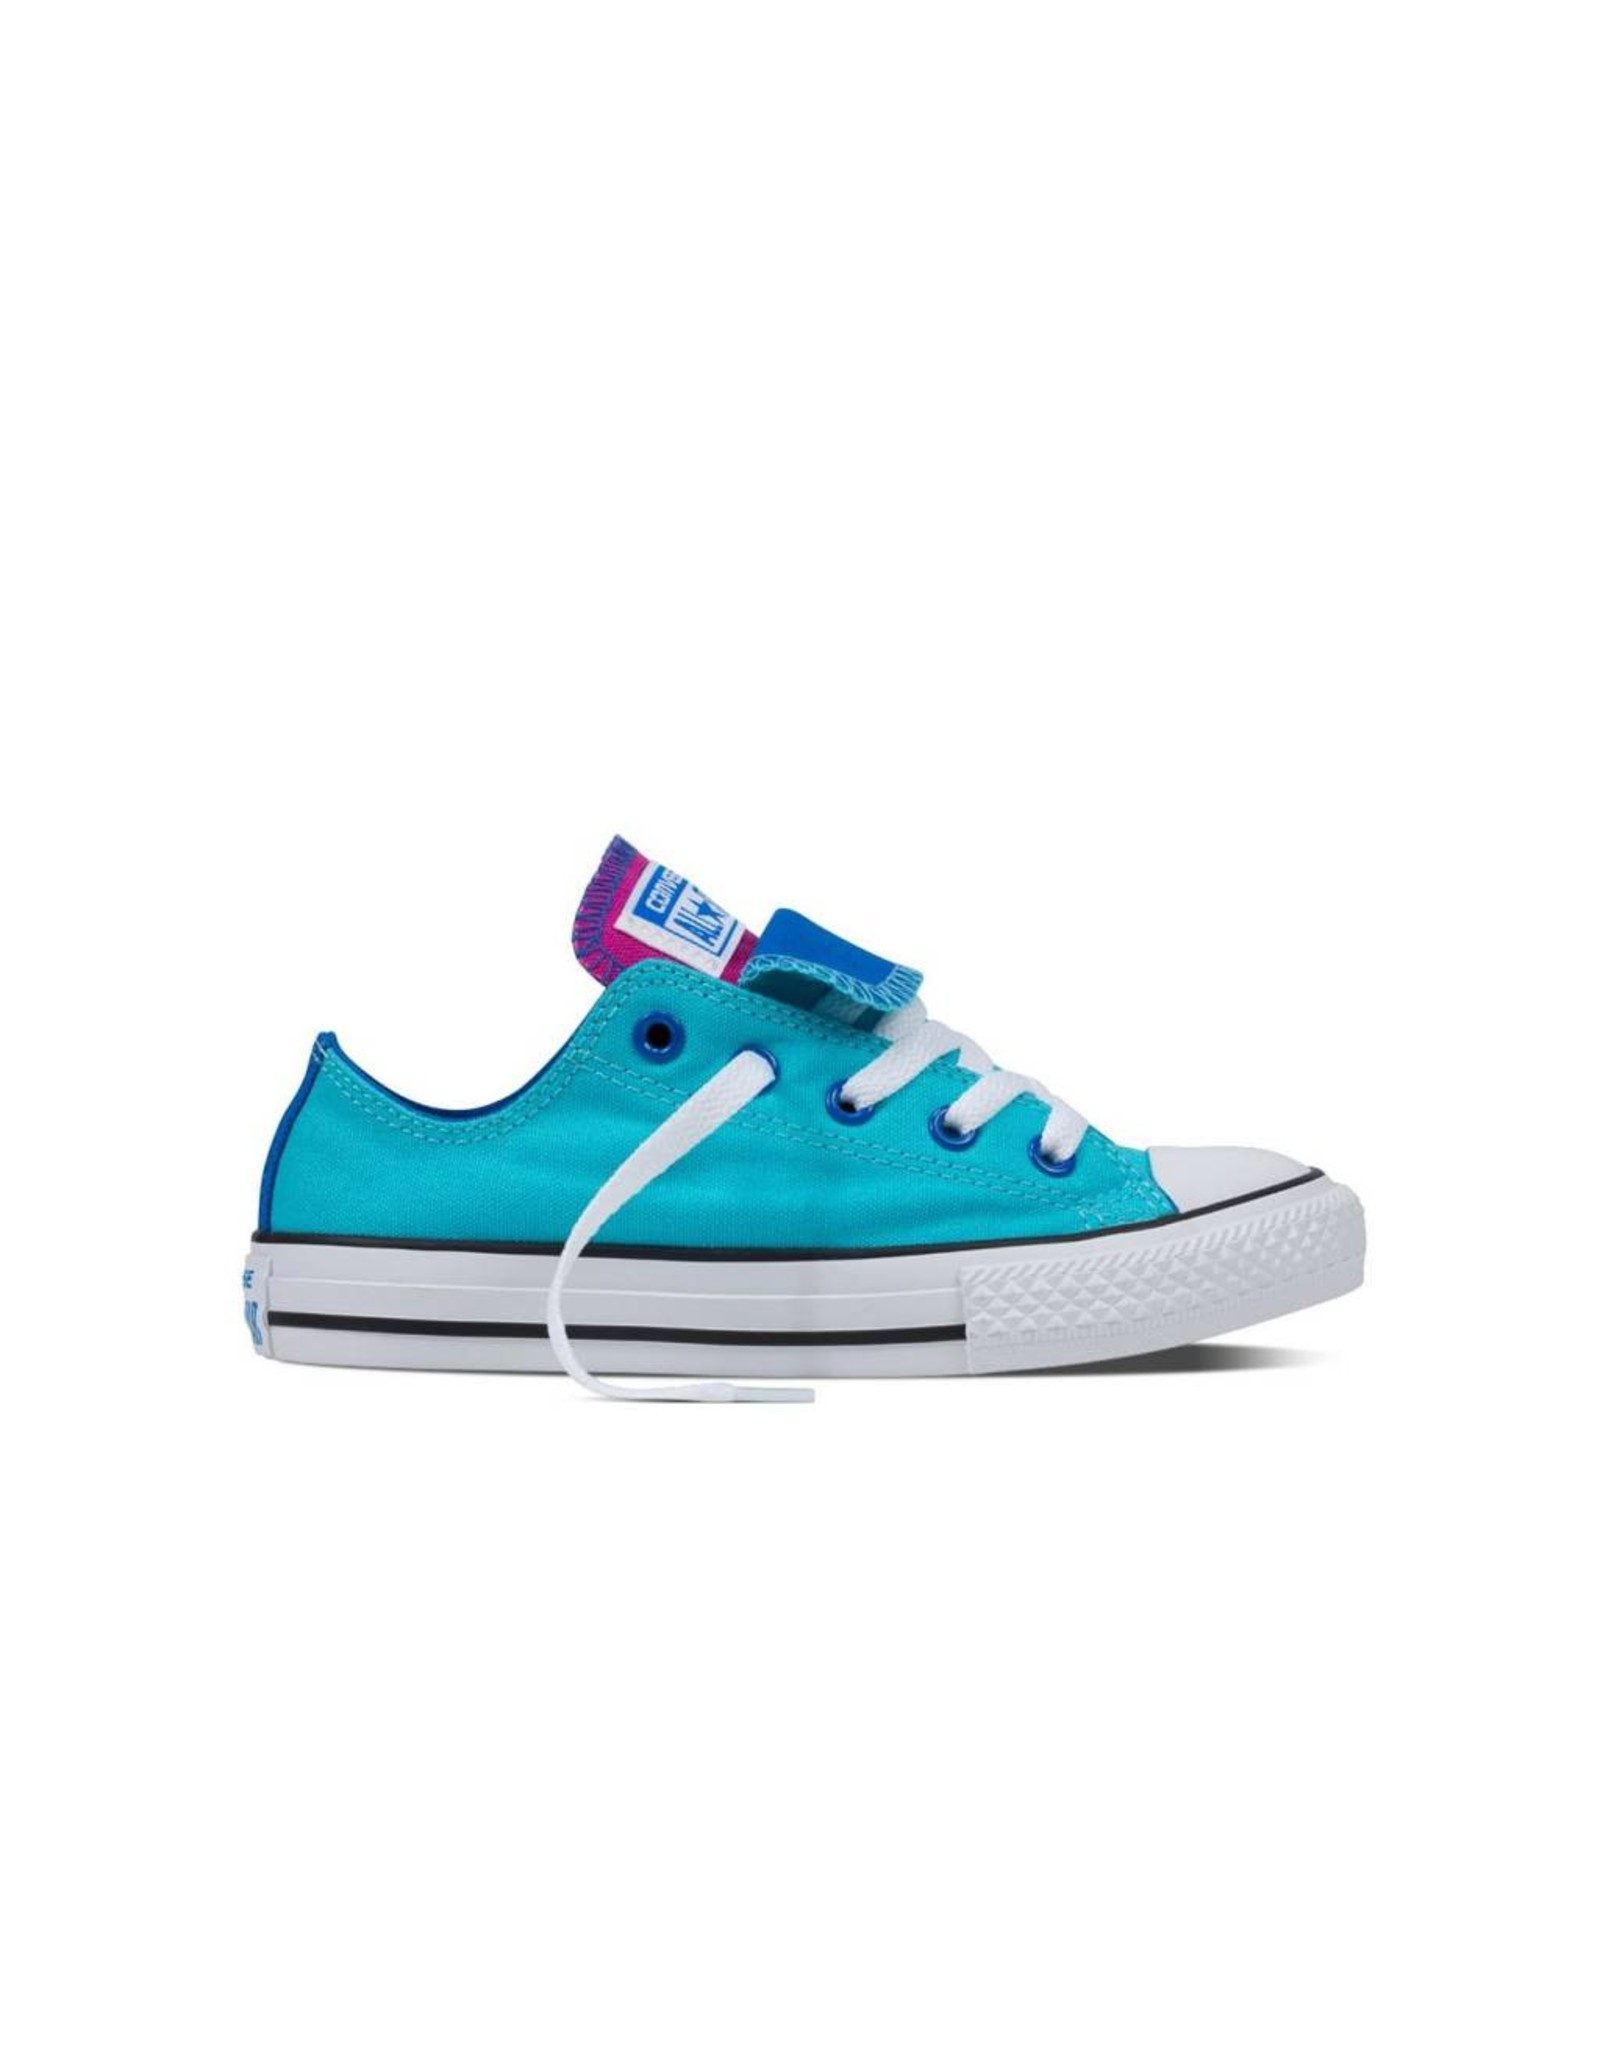 CONVERSE CHUCK TAYLOR DOUBLE TONGUE OX FRESH CYAN/SOAR CWDFC-656006C